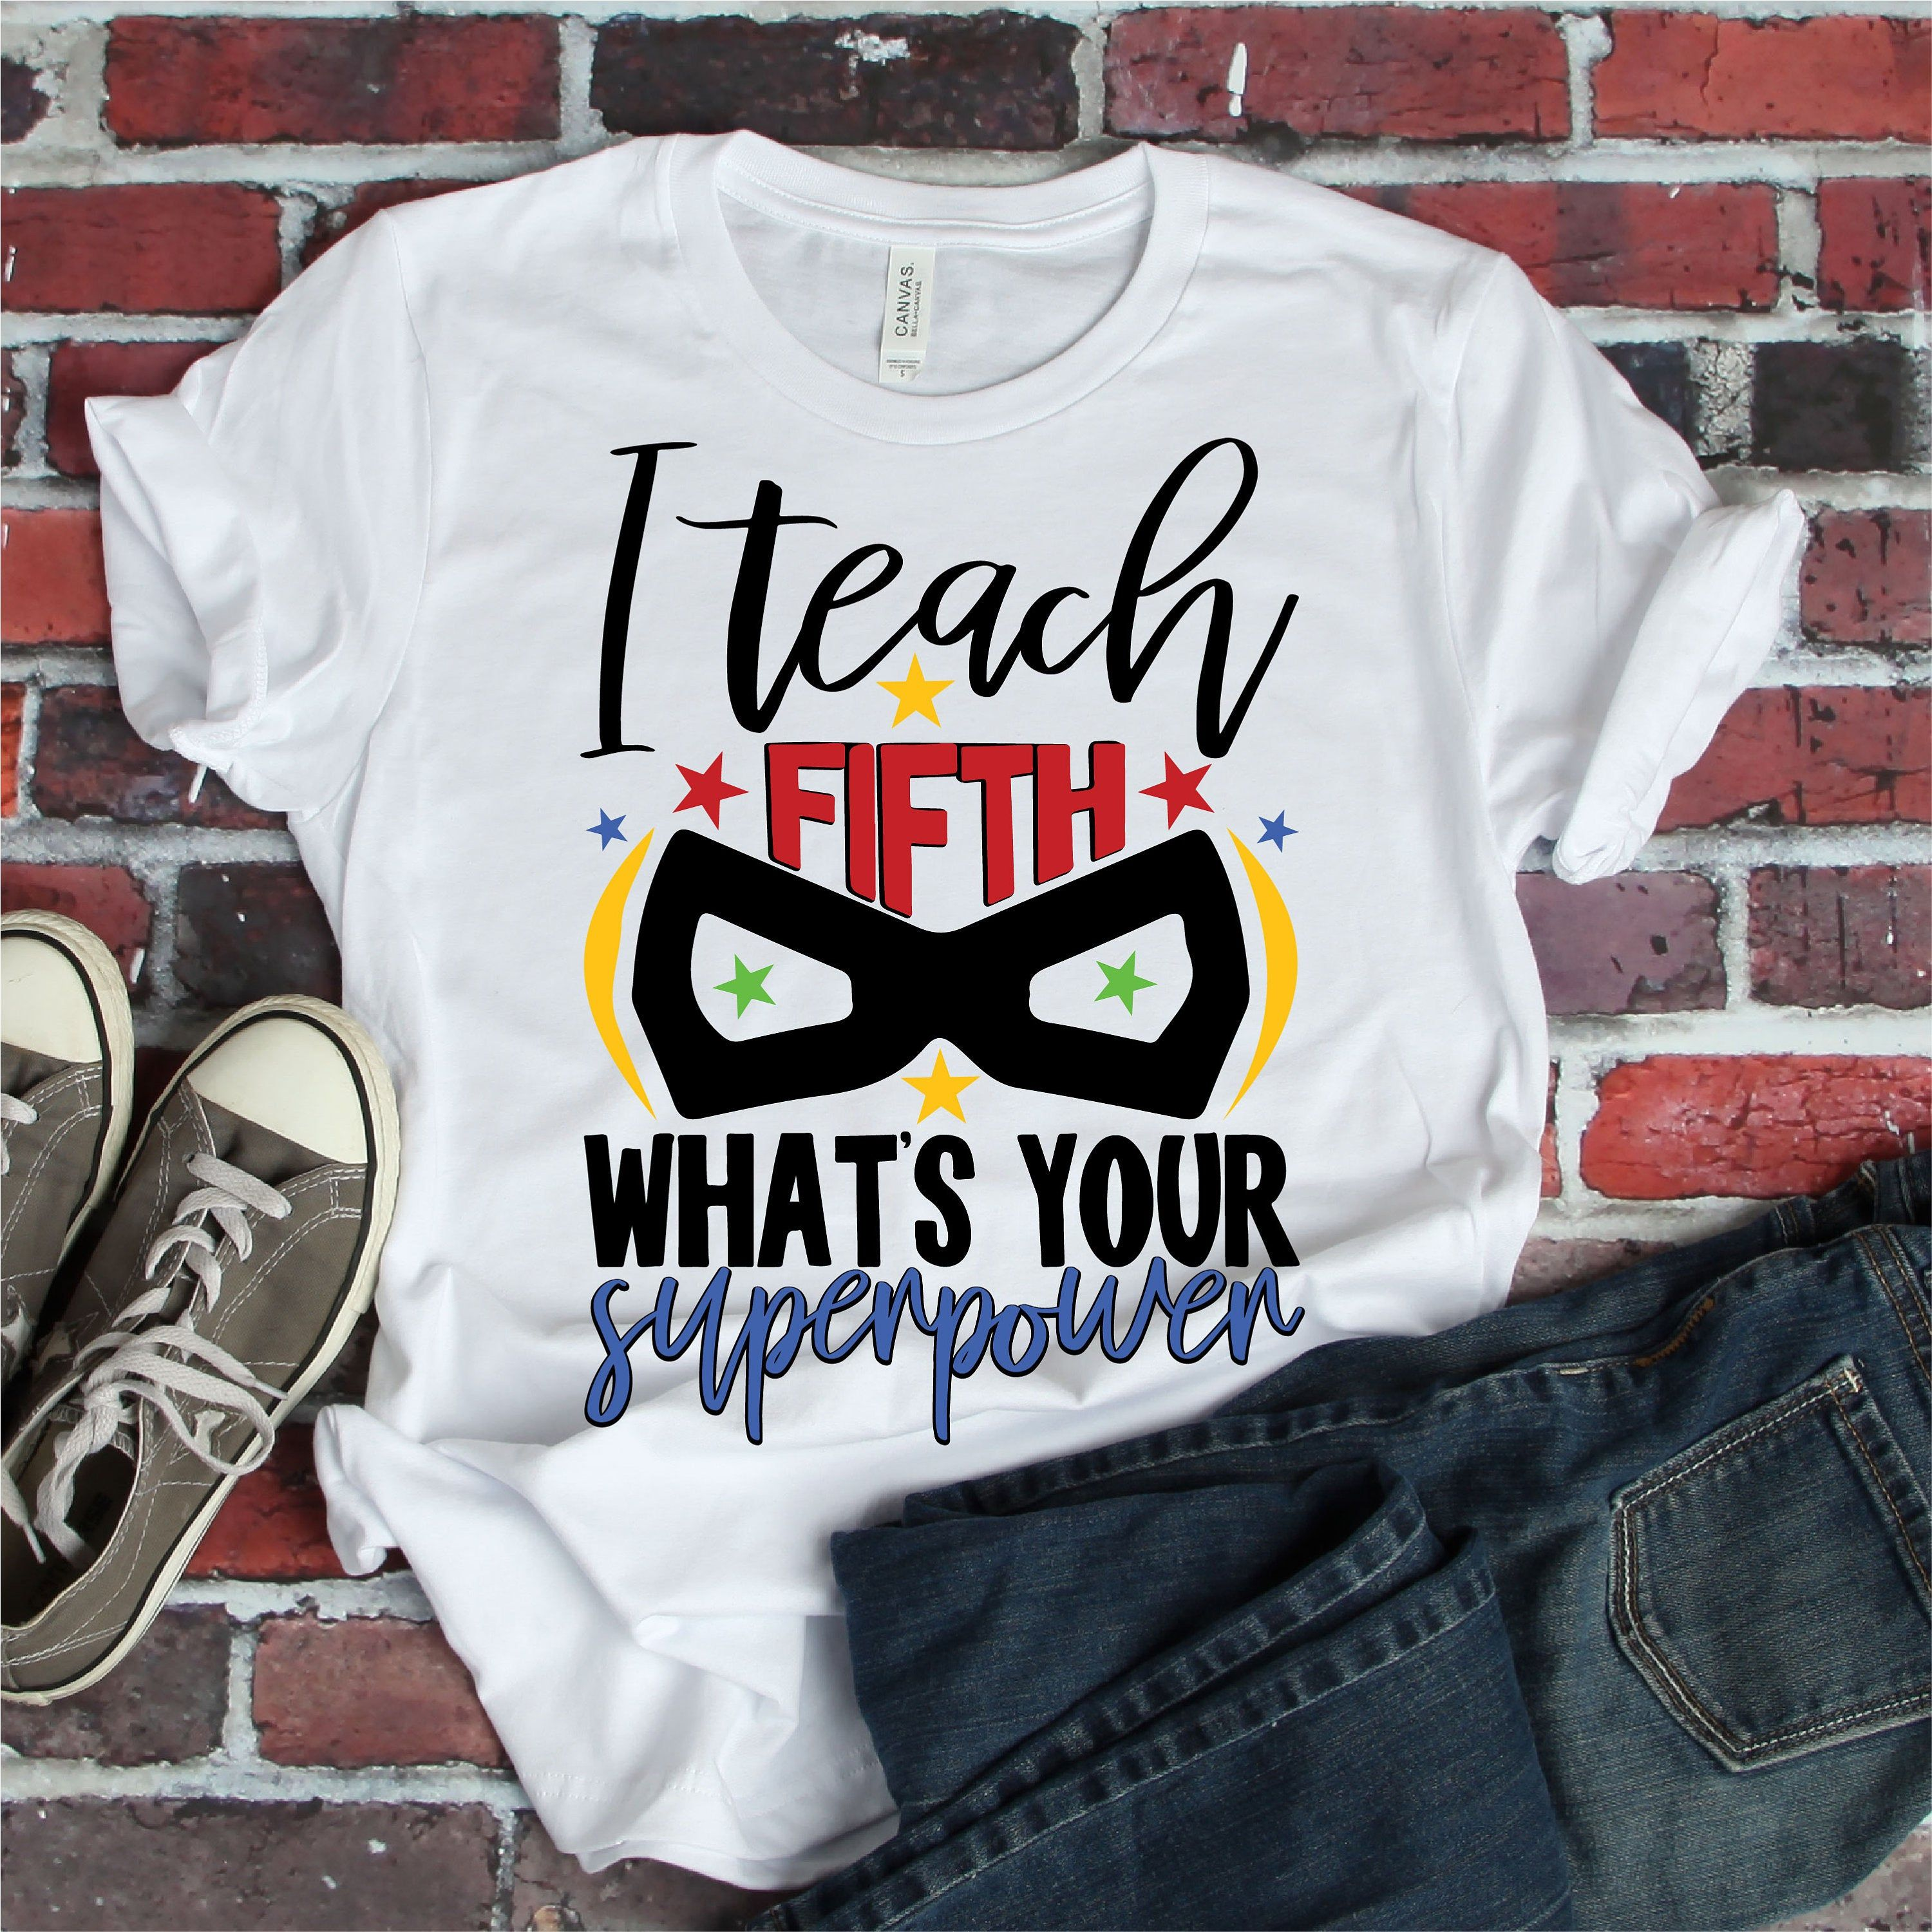 I teach Fifth what's your superpower svg, teacher svg